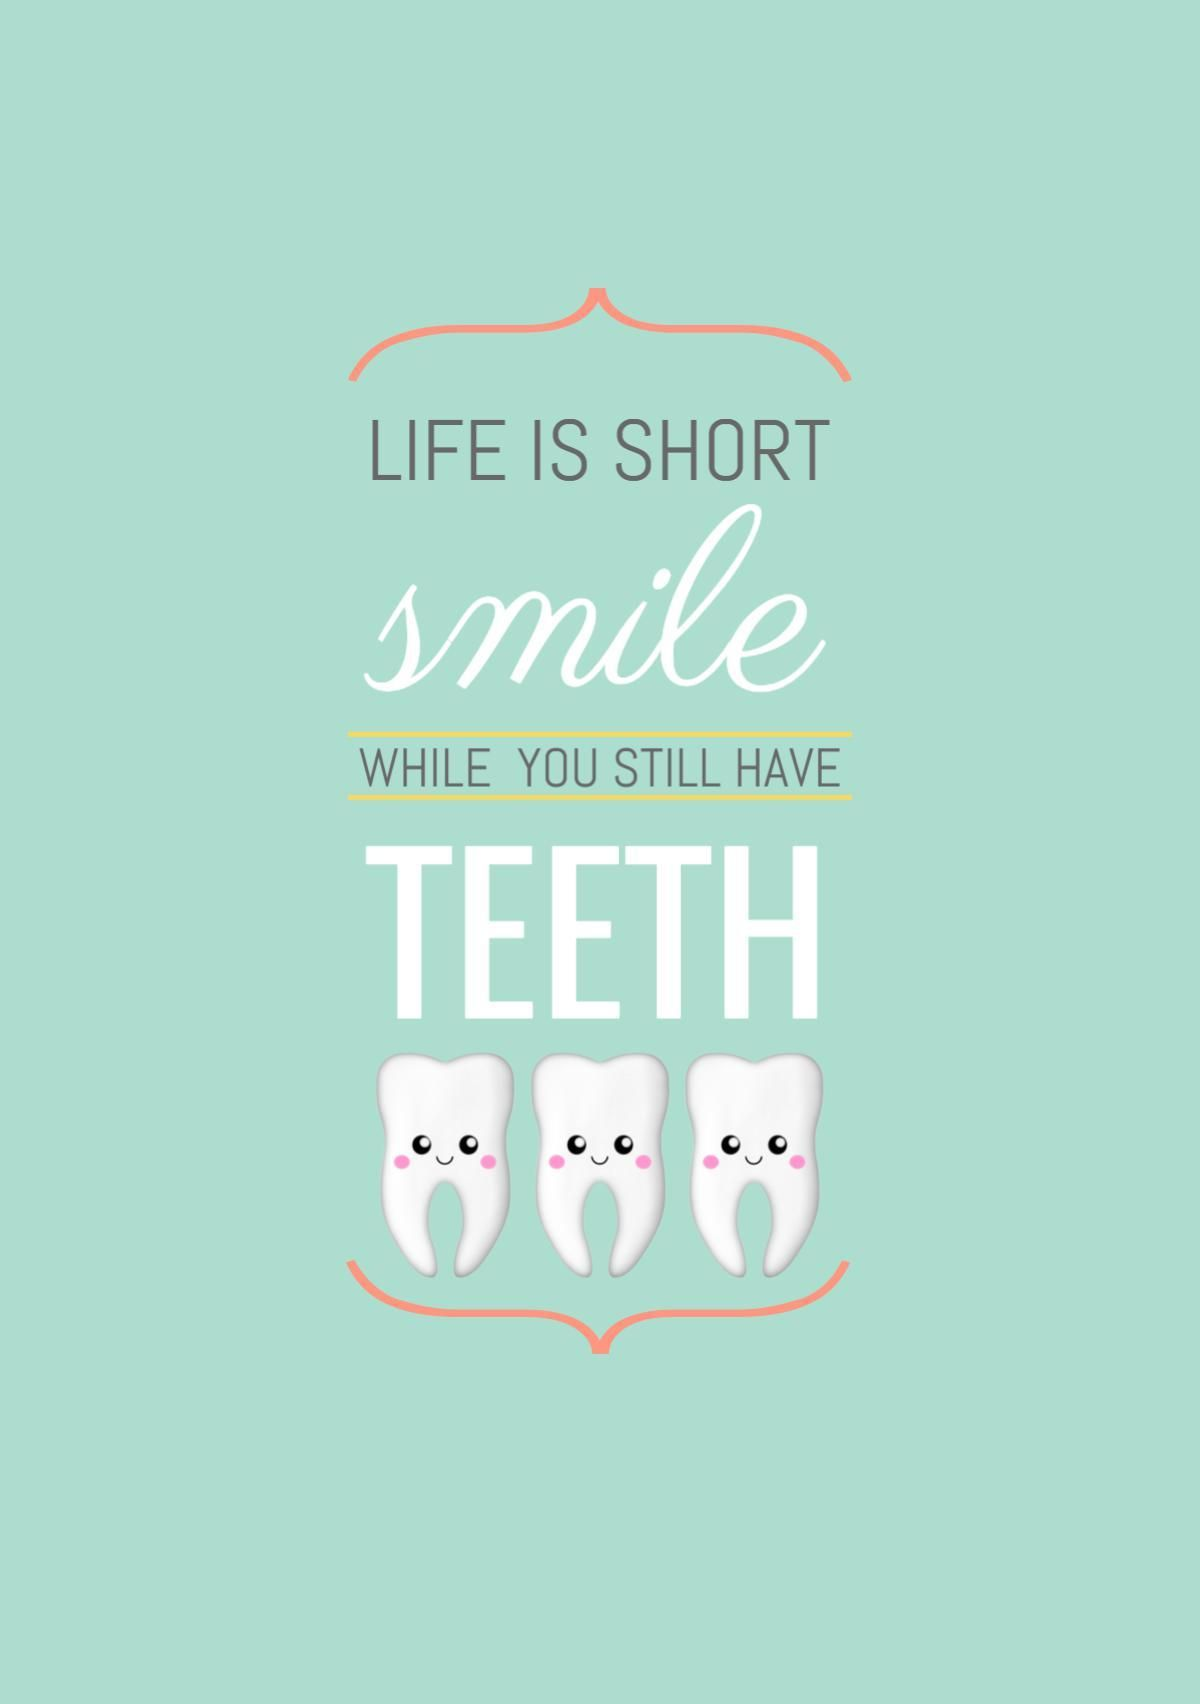 Dentist Quotes North Ryde Dentistry Quote For The Day  Dental  Pinterest